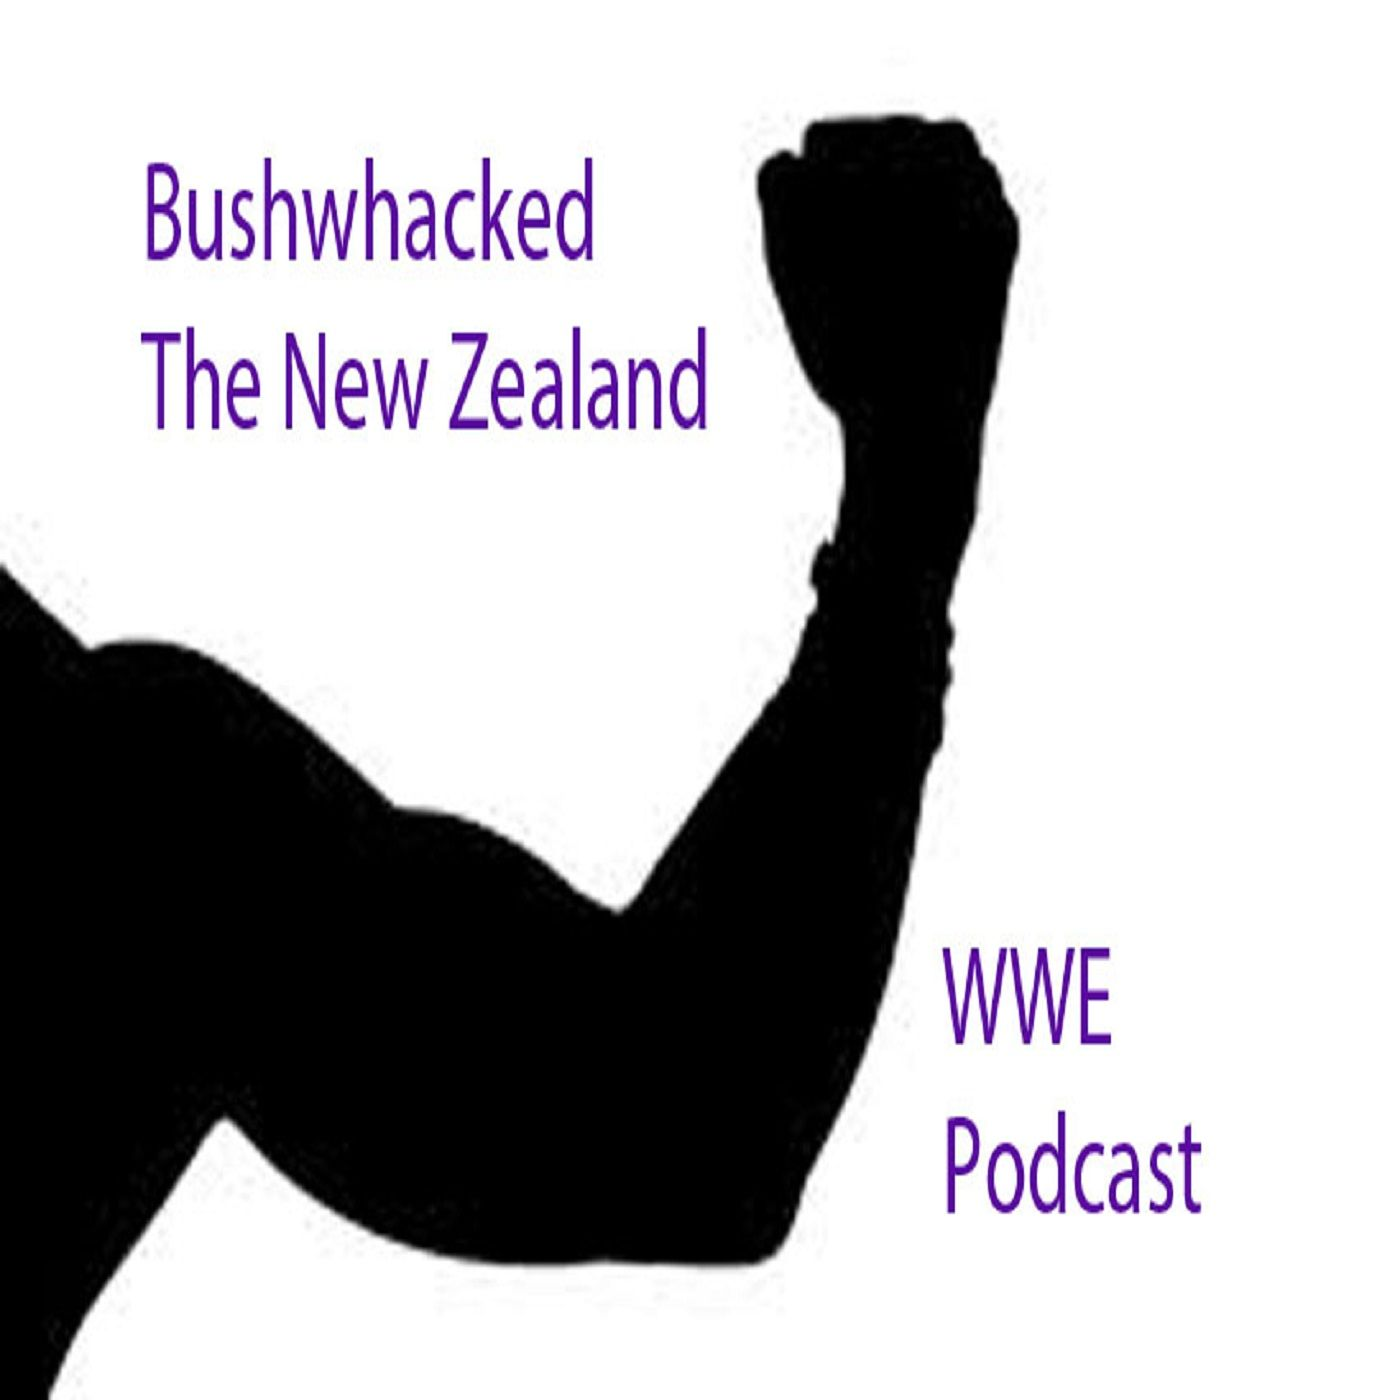 Bushwhacked WWE Podcast